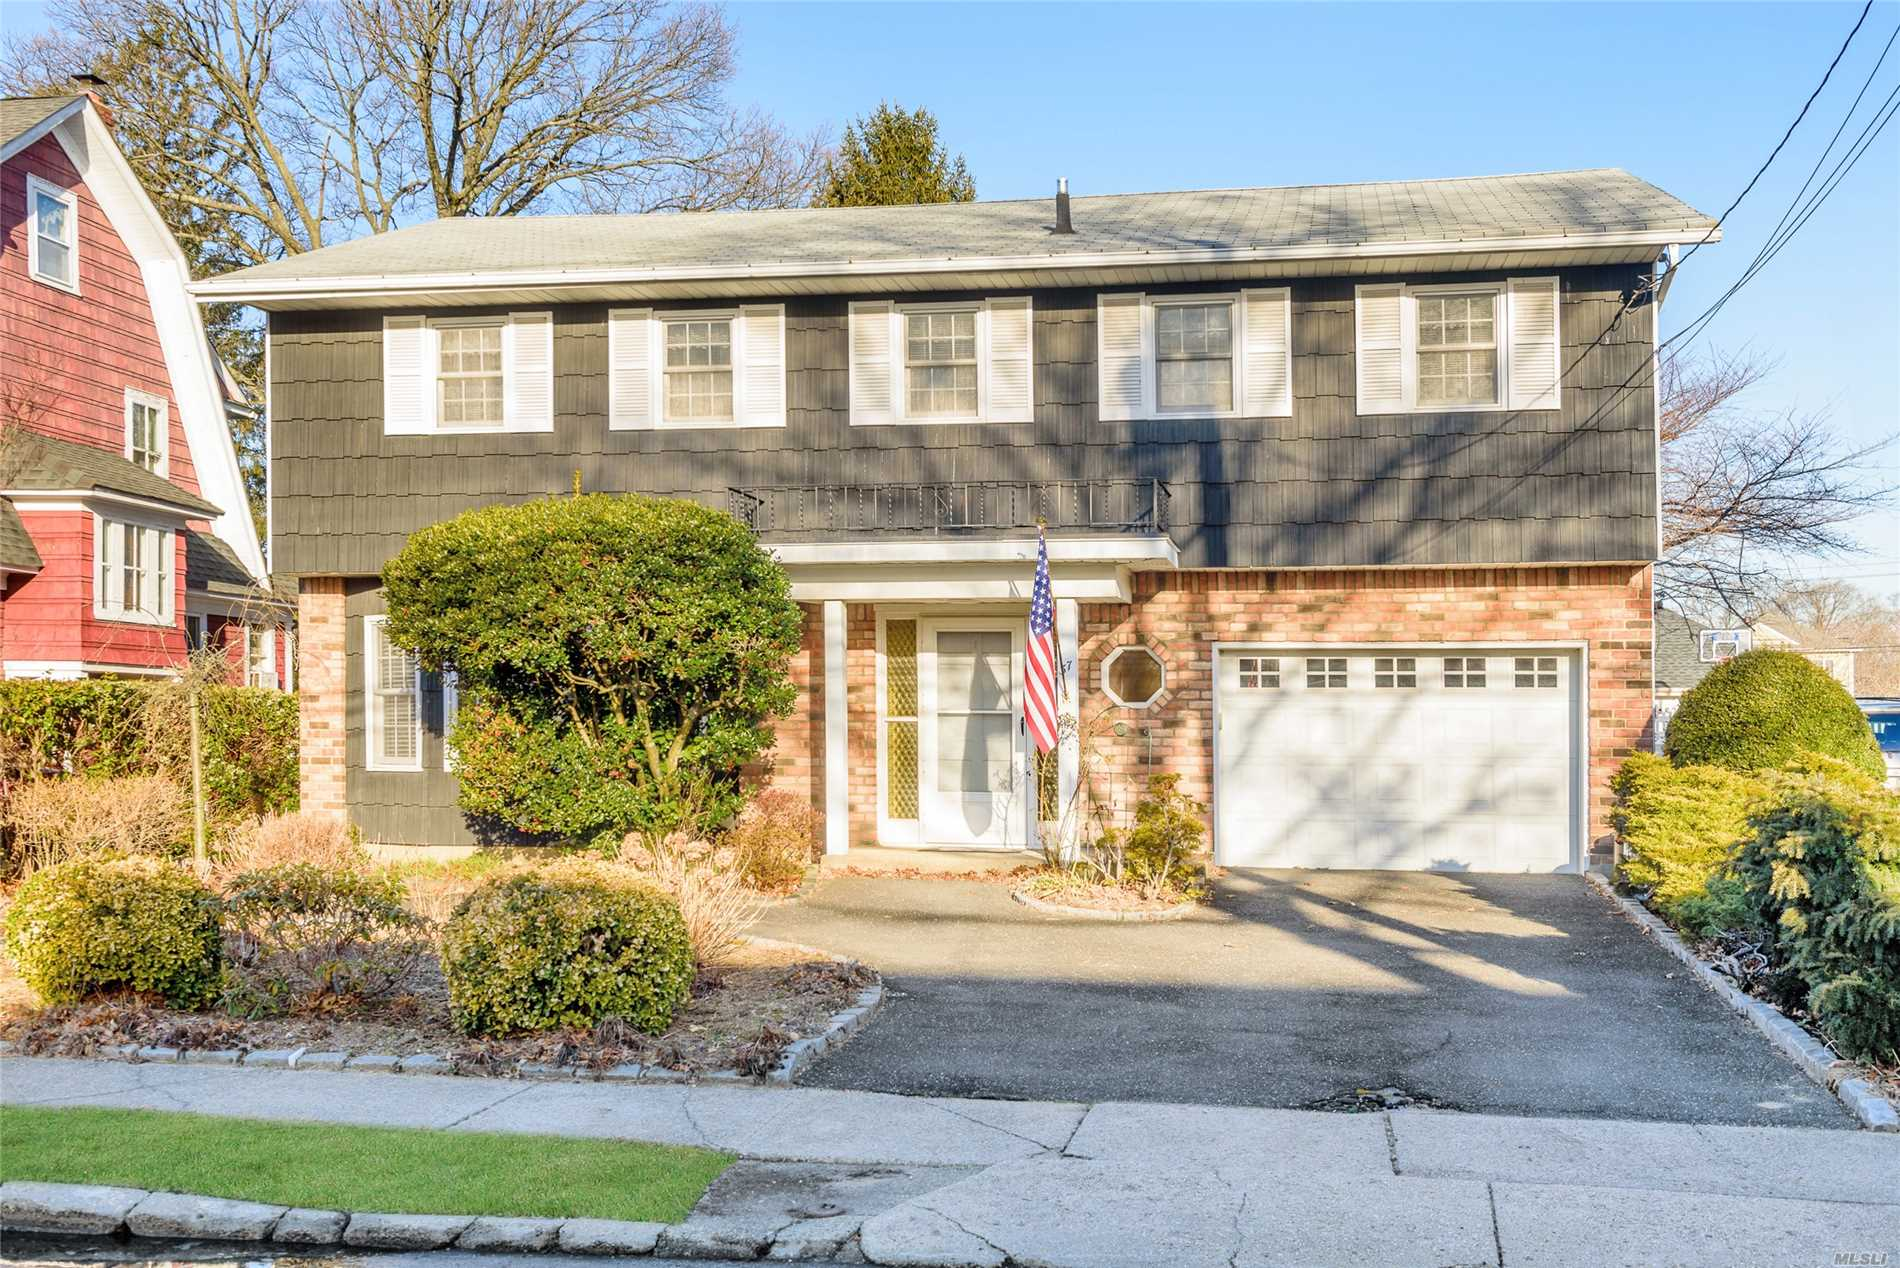 Location, Location, Location! Gorgeous Splanch on 50 x 150 Fenced Property. Bright Entrance Foyer leads to Formal Dining Rm, Large Eat In Kitchen, Family Rm, 1/2 Bath. Formal Living Room on Separate Level with Fireplace and Cathedral Ceiling. Perfect for Entertaining. Master Suite has 2 Walk In Closets & Full Bath. There are 4 additional Large Bedrooms with tons of closet space plus Attic space, Laundry/Utilities in Basement & Attached Garage. Walk to Gibson or VS LIRR. 15 Mins to JFK......